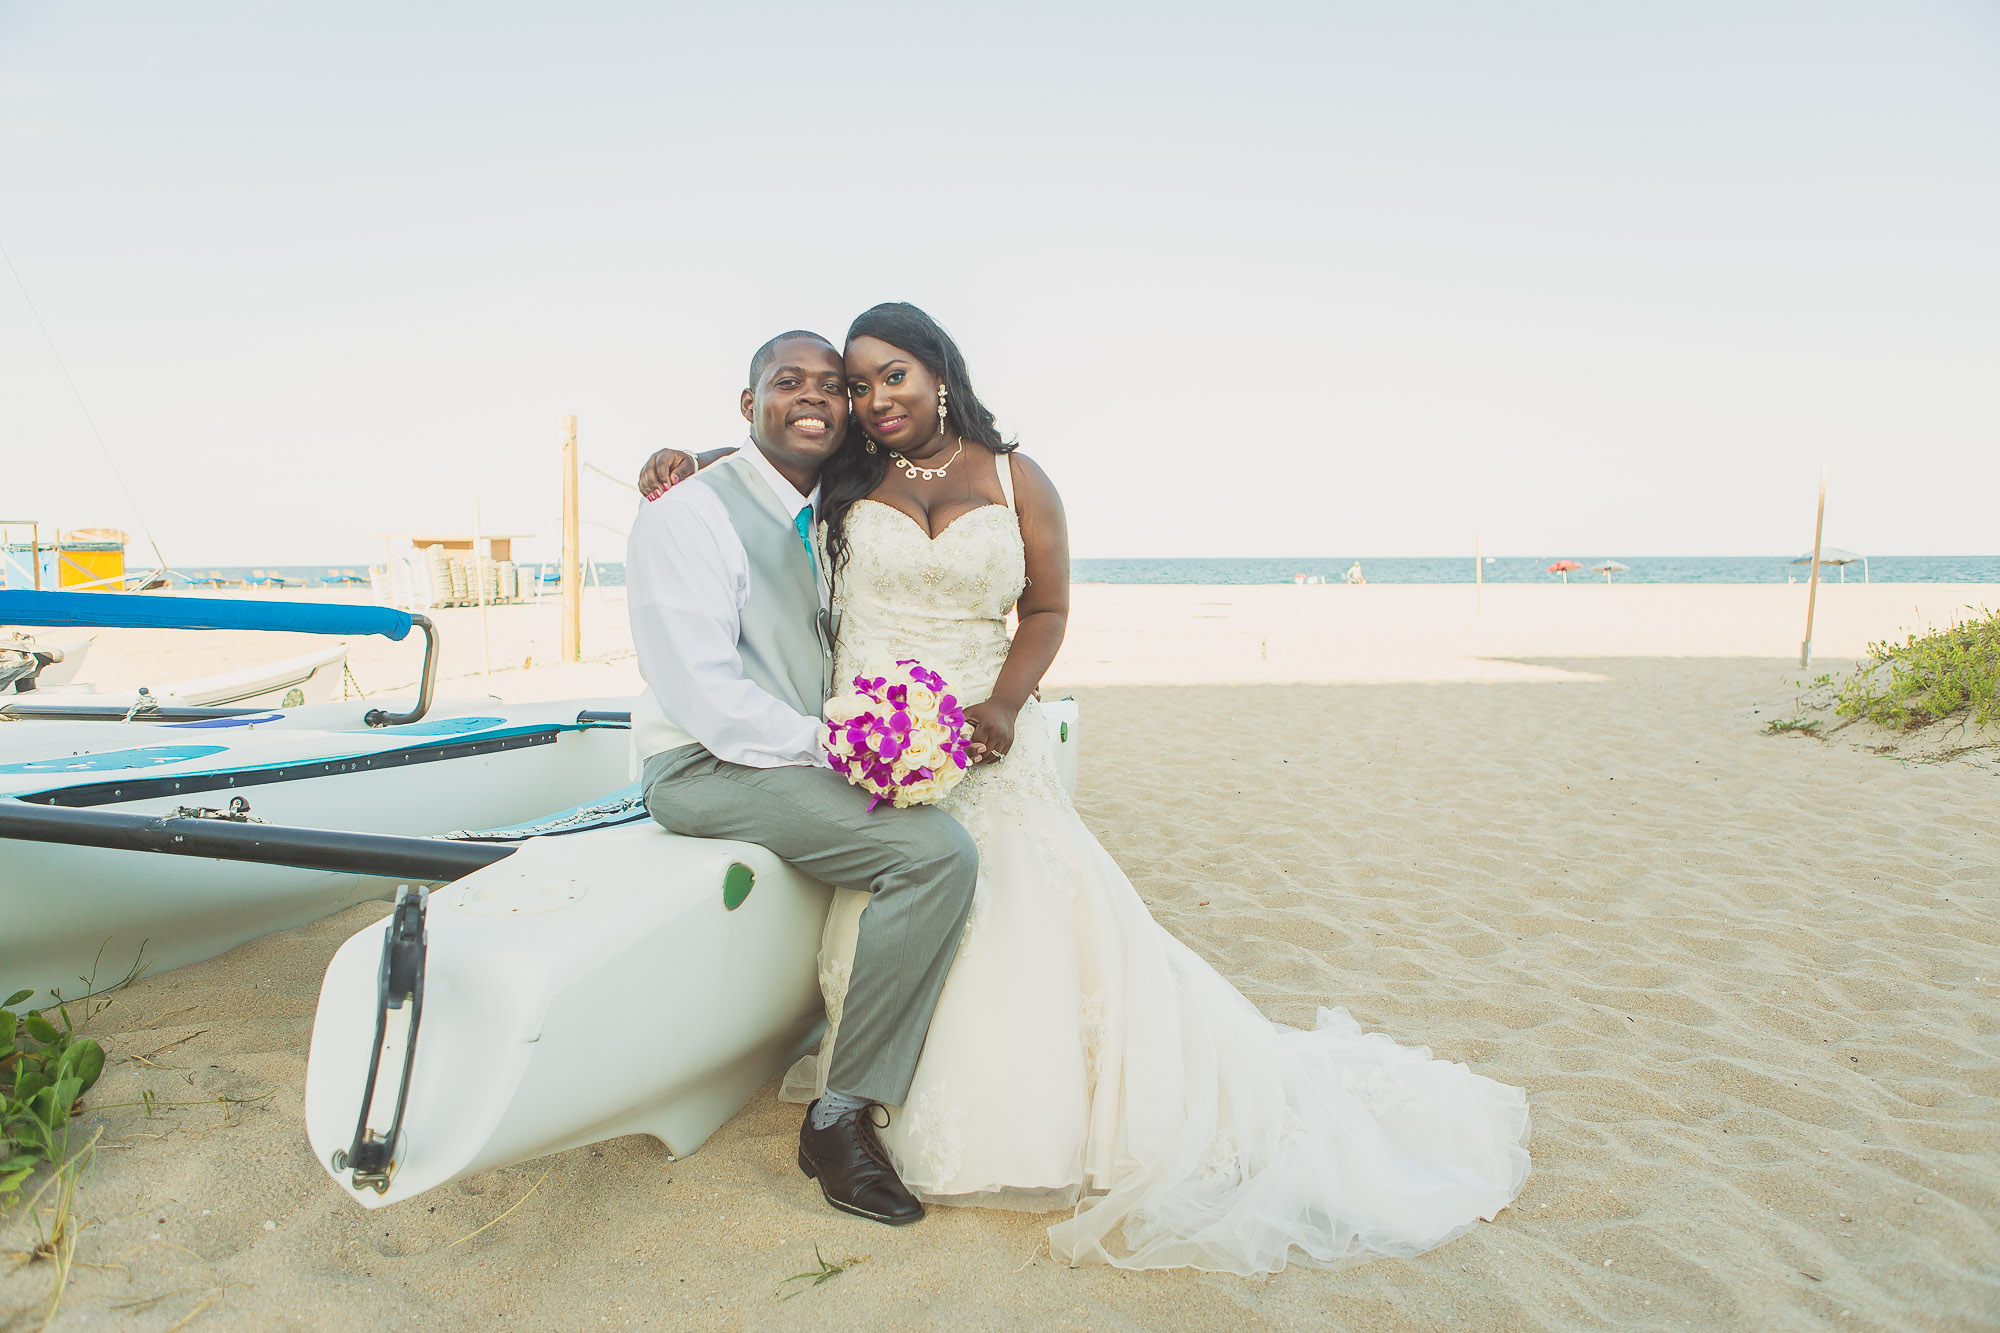 Cheron & Wilson: Destination Wedding at Pompano Beach, Fl